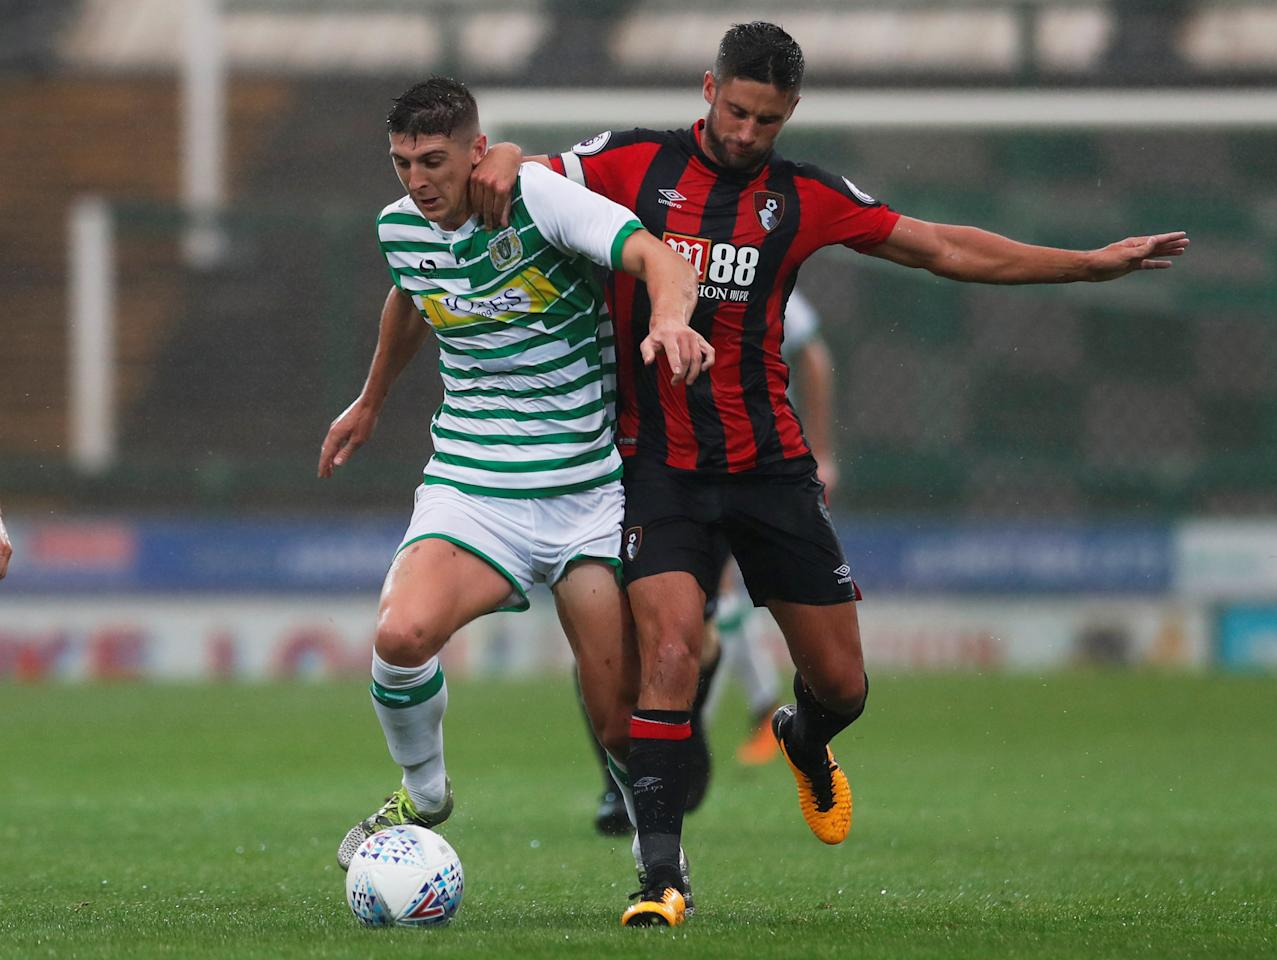 Soccer Football - Yeovil Town vs AFC Bournemouth - Pre Season Friendly - Yeovil, Britain - August 2, 2017   Bournemouth's Andrew Surman in action with Yeovil's Jake Gray   Action Images via Reuters/Andrew Couldridge  optaID:6t6o7a9am7ya7lfgyphilgcmh